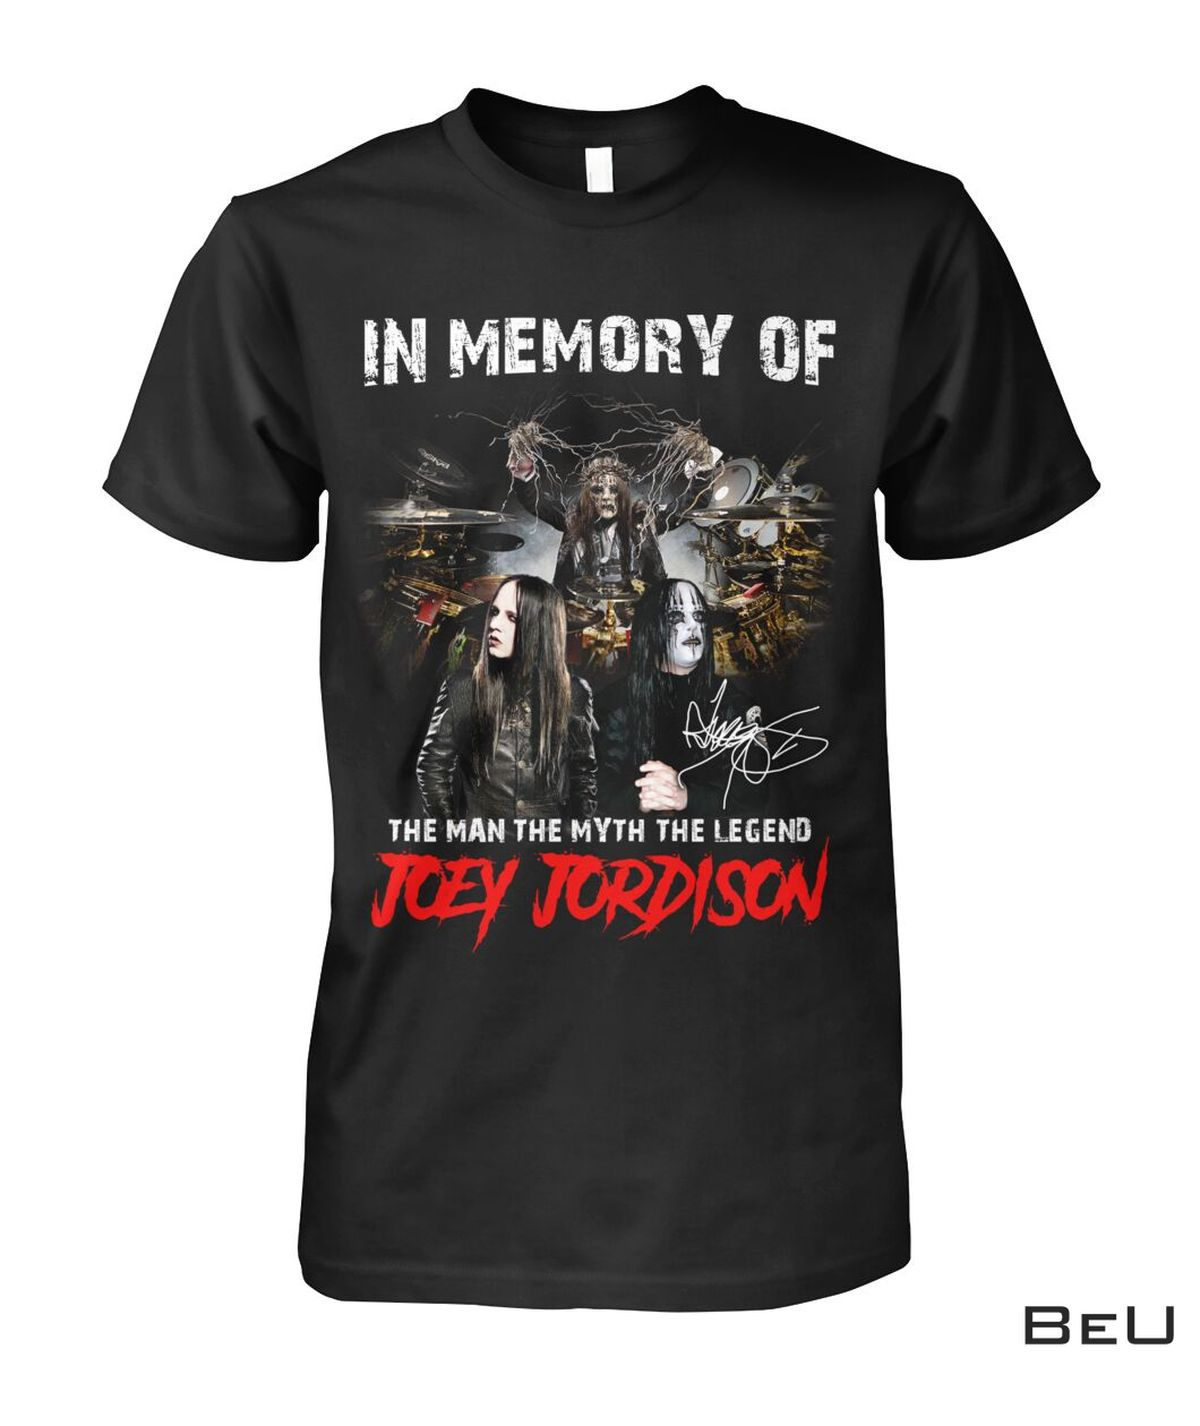 Joey Jordison In Memory Of The Man The Myth The Legend Shirt, hoodie, tank top